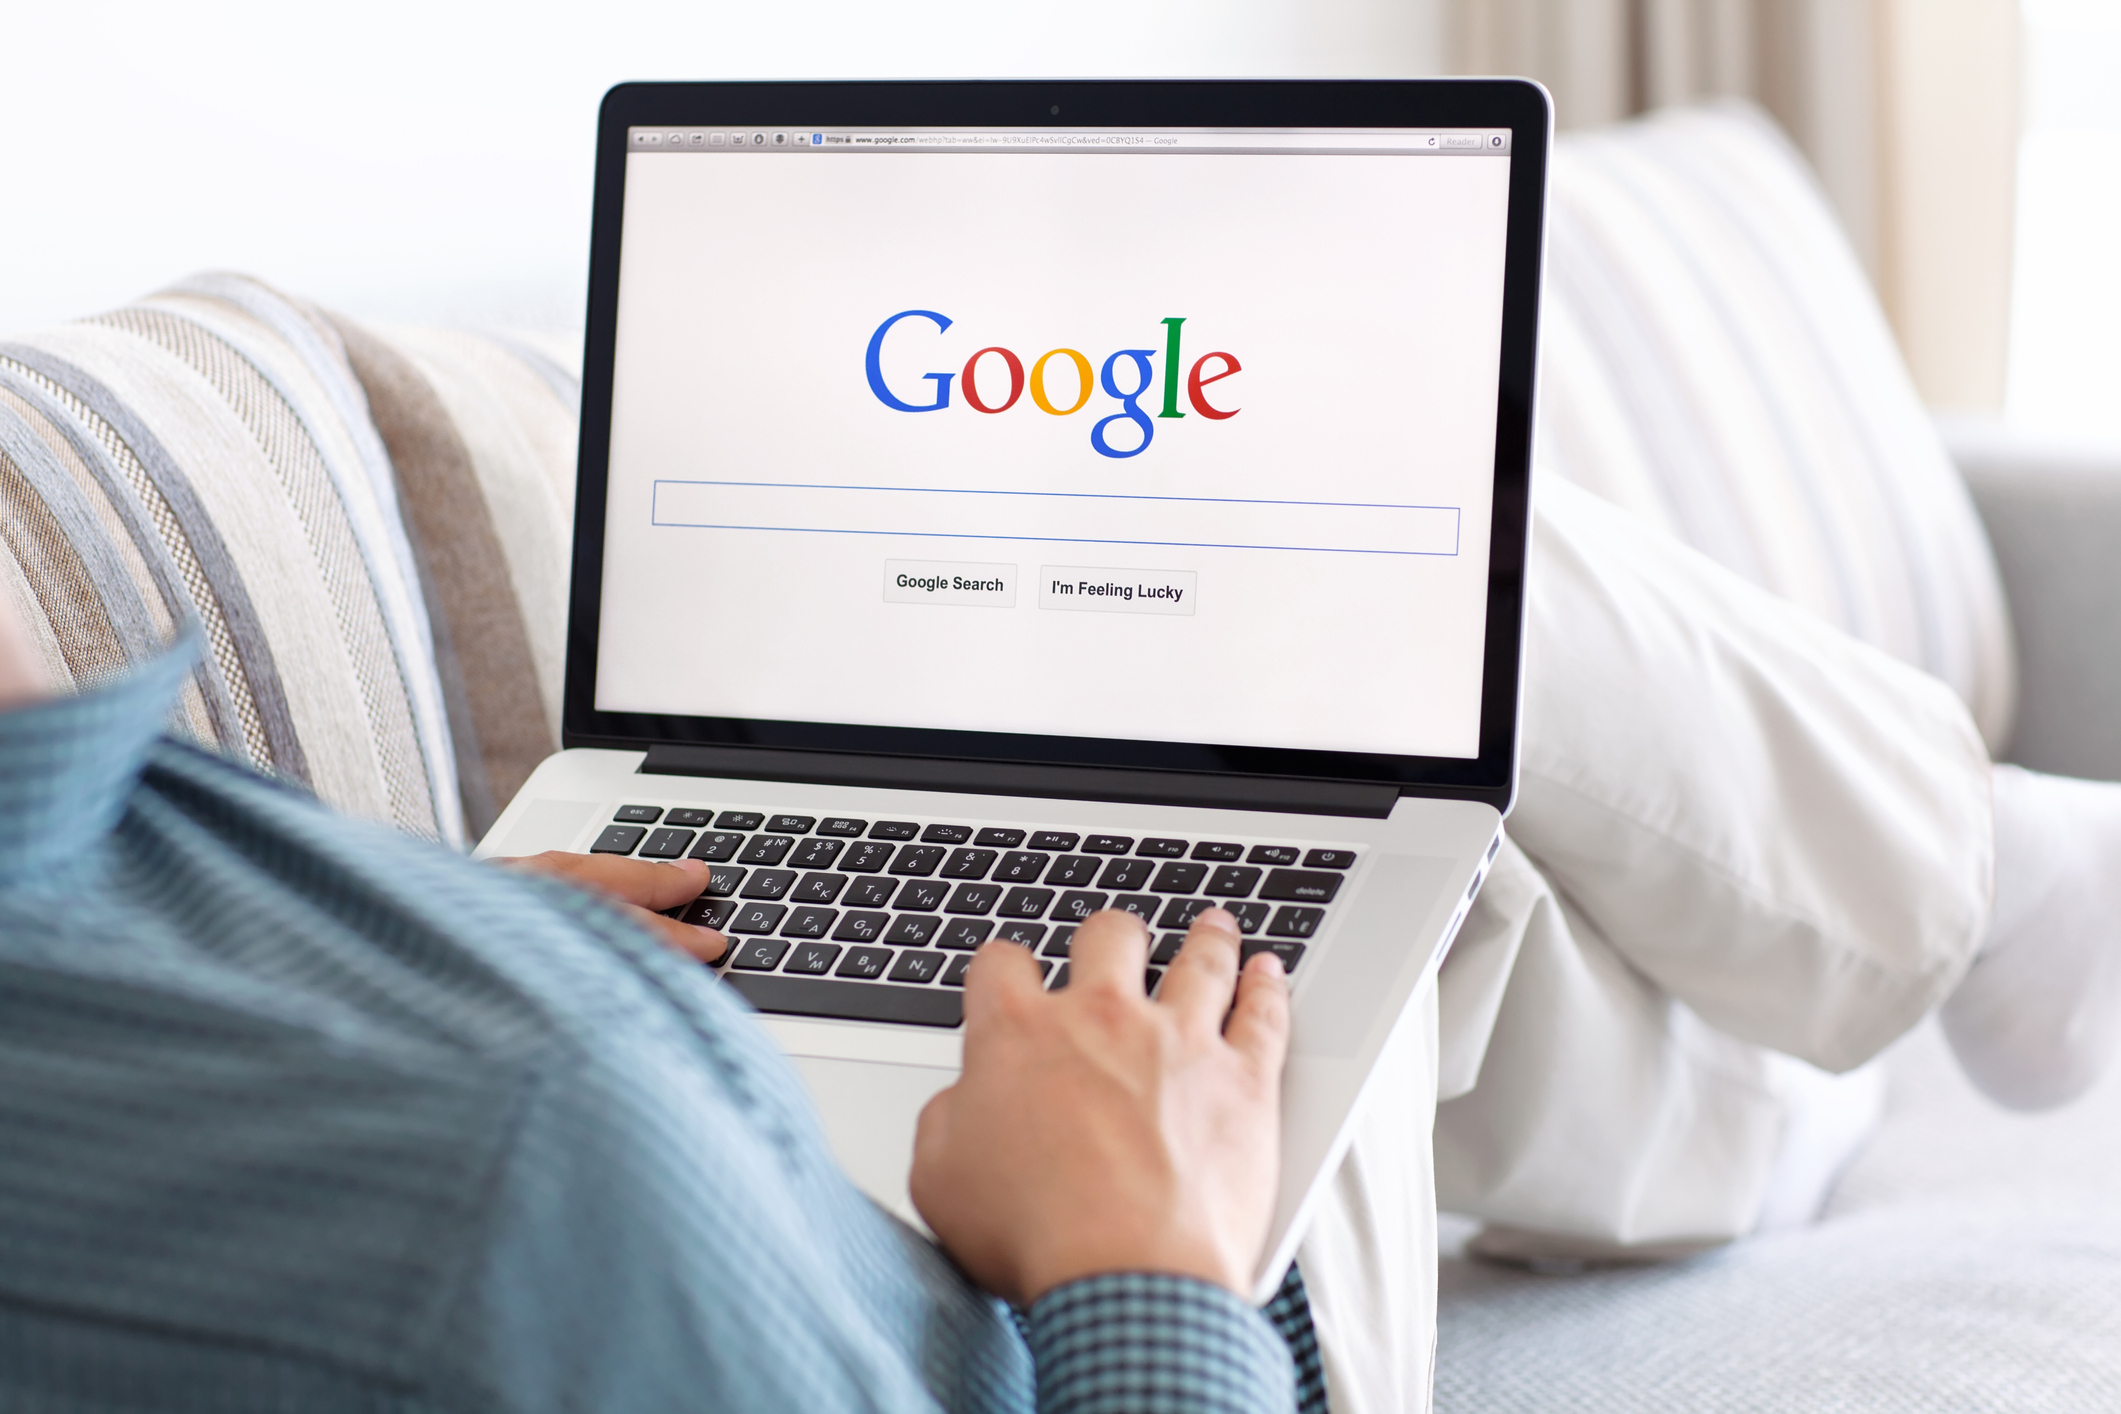 A person on the Google home page